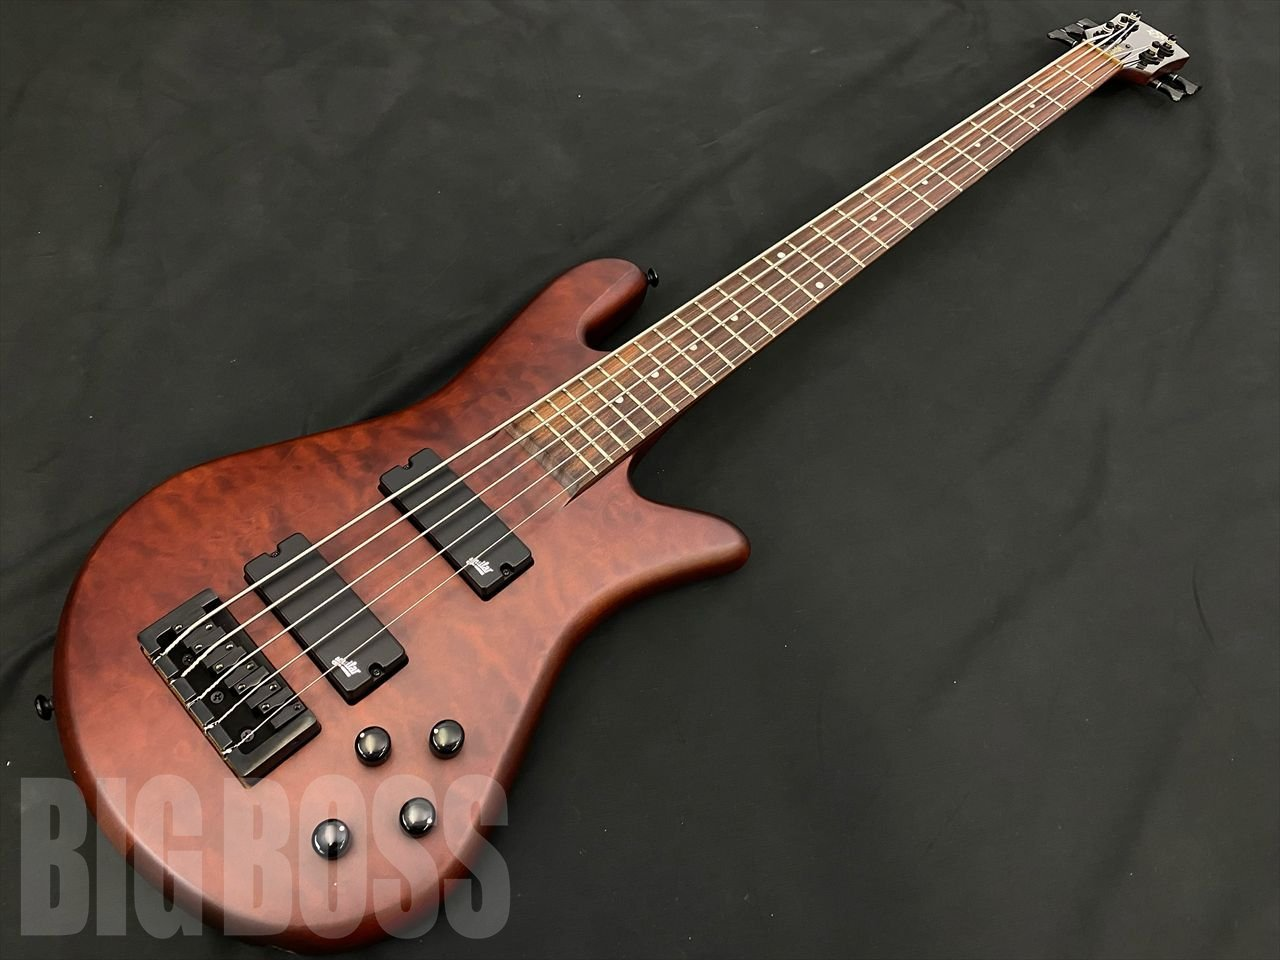 【即納可能】Spector(スペクター) Legend 5 Neck-Thru (Walnut Matte) 駅前店